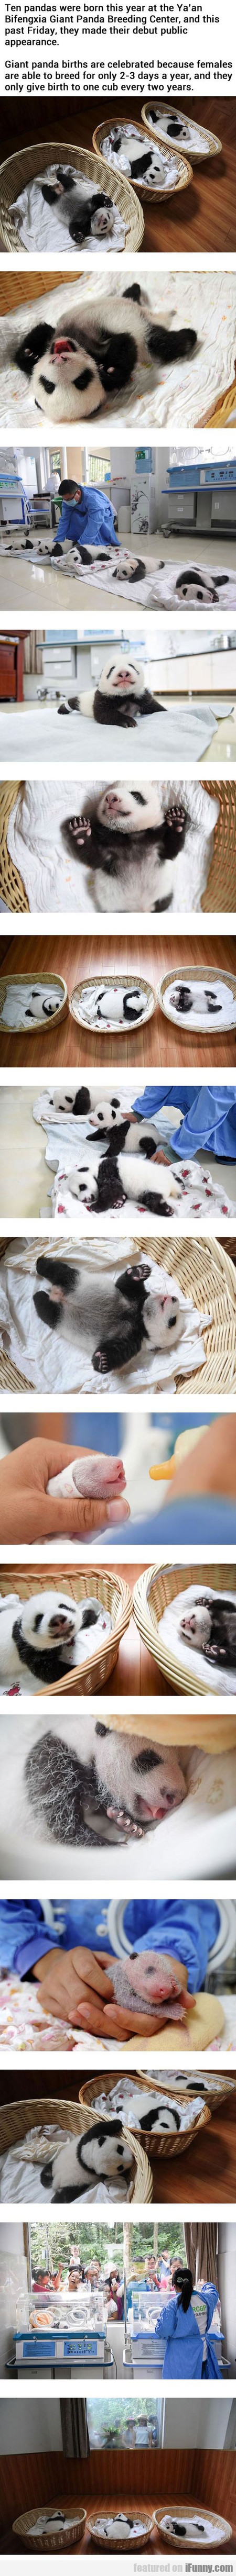 Meanwhile At The Chinese Panda Breeding Center